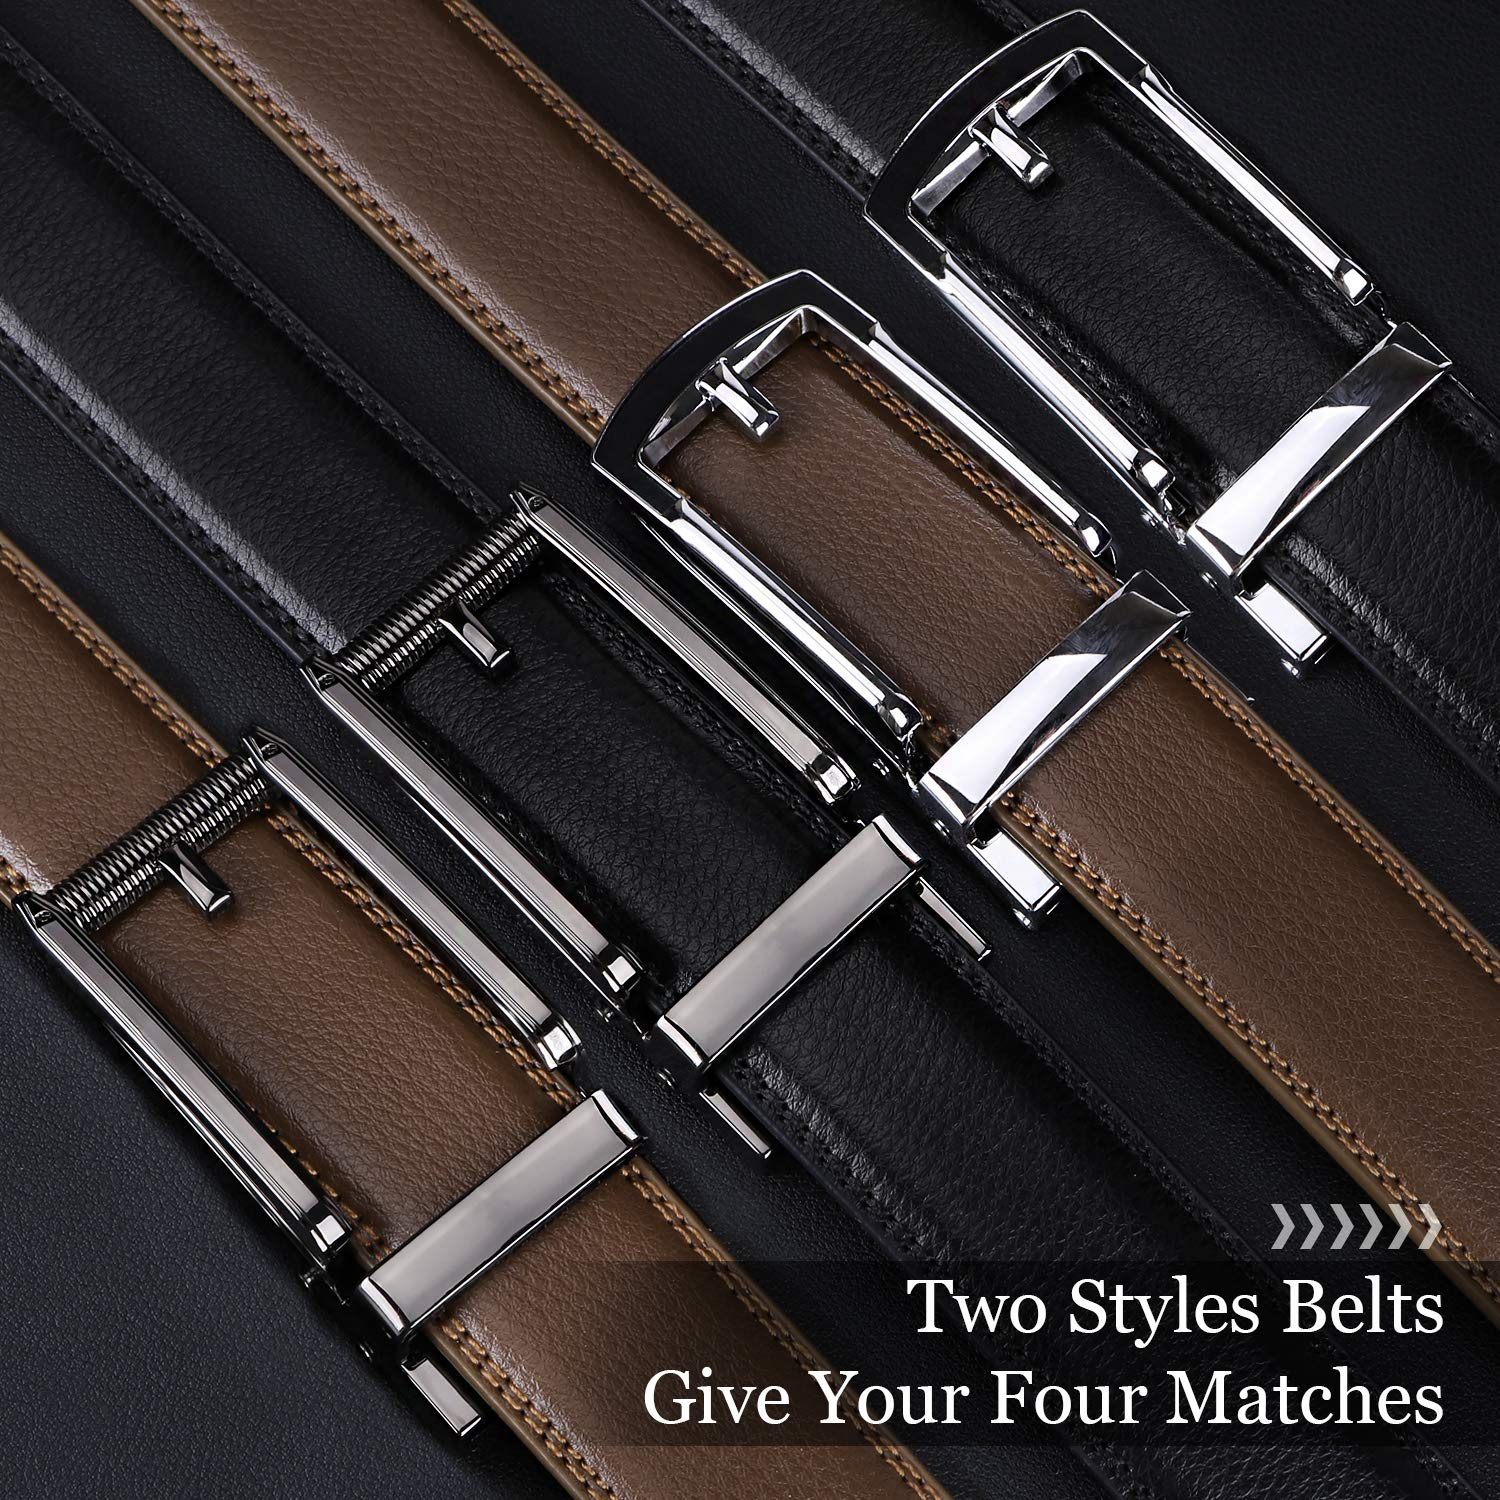 WERFORU Set of 2 Leather Ratchet Dress Belt for Men Perfect Fit Waist Size up to 44 inches with Automatic Buckle